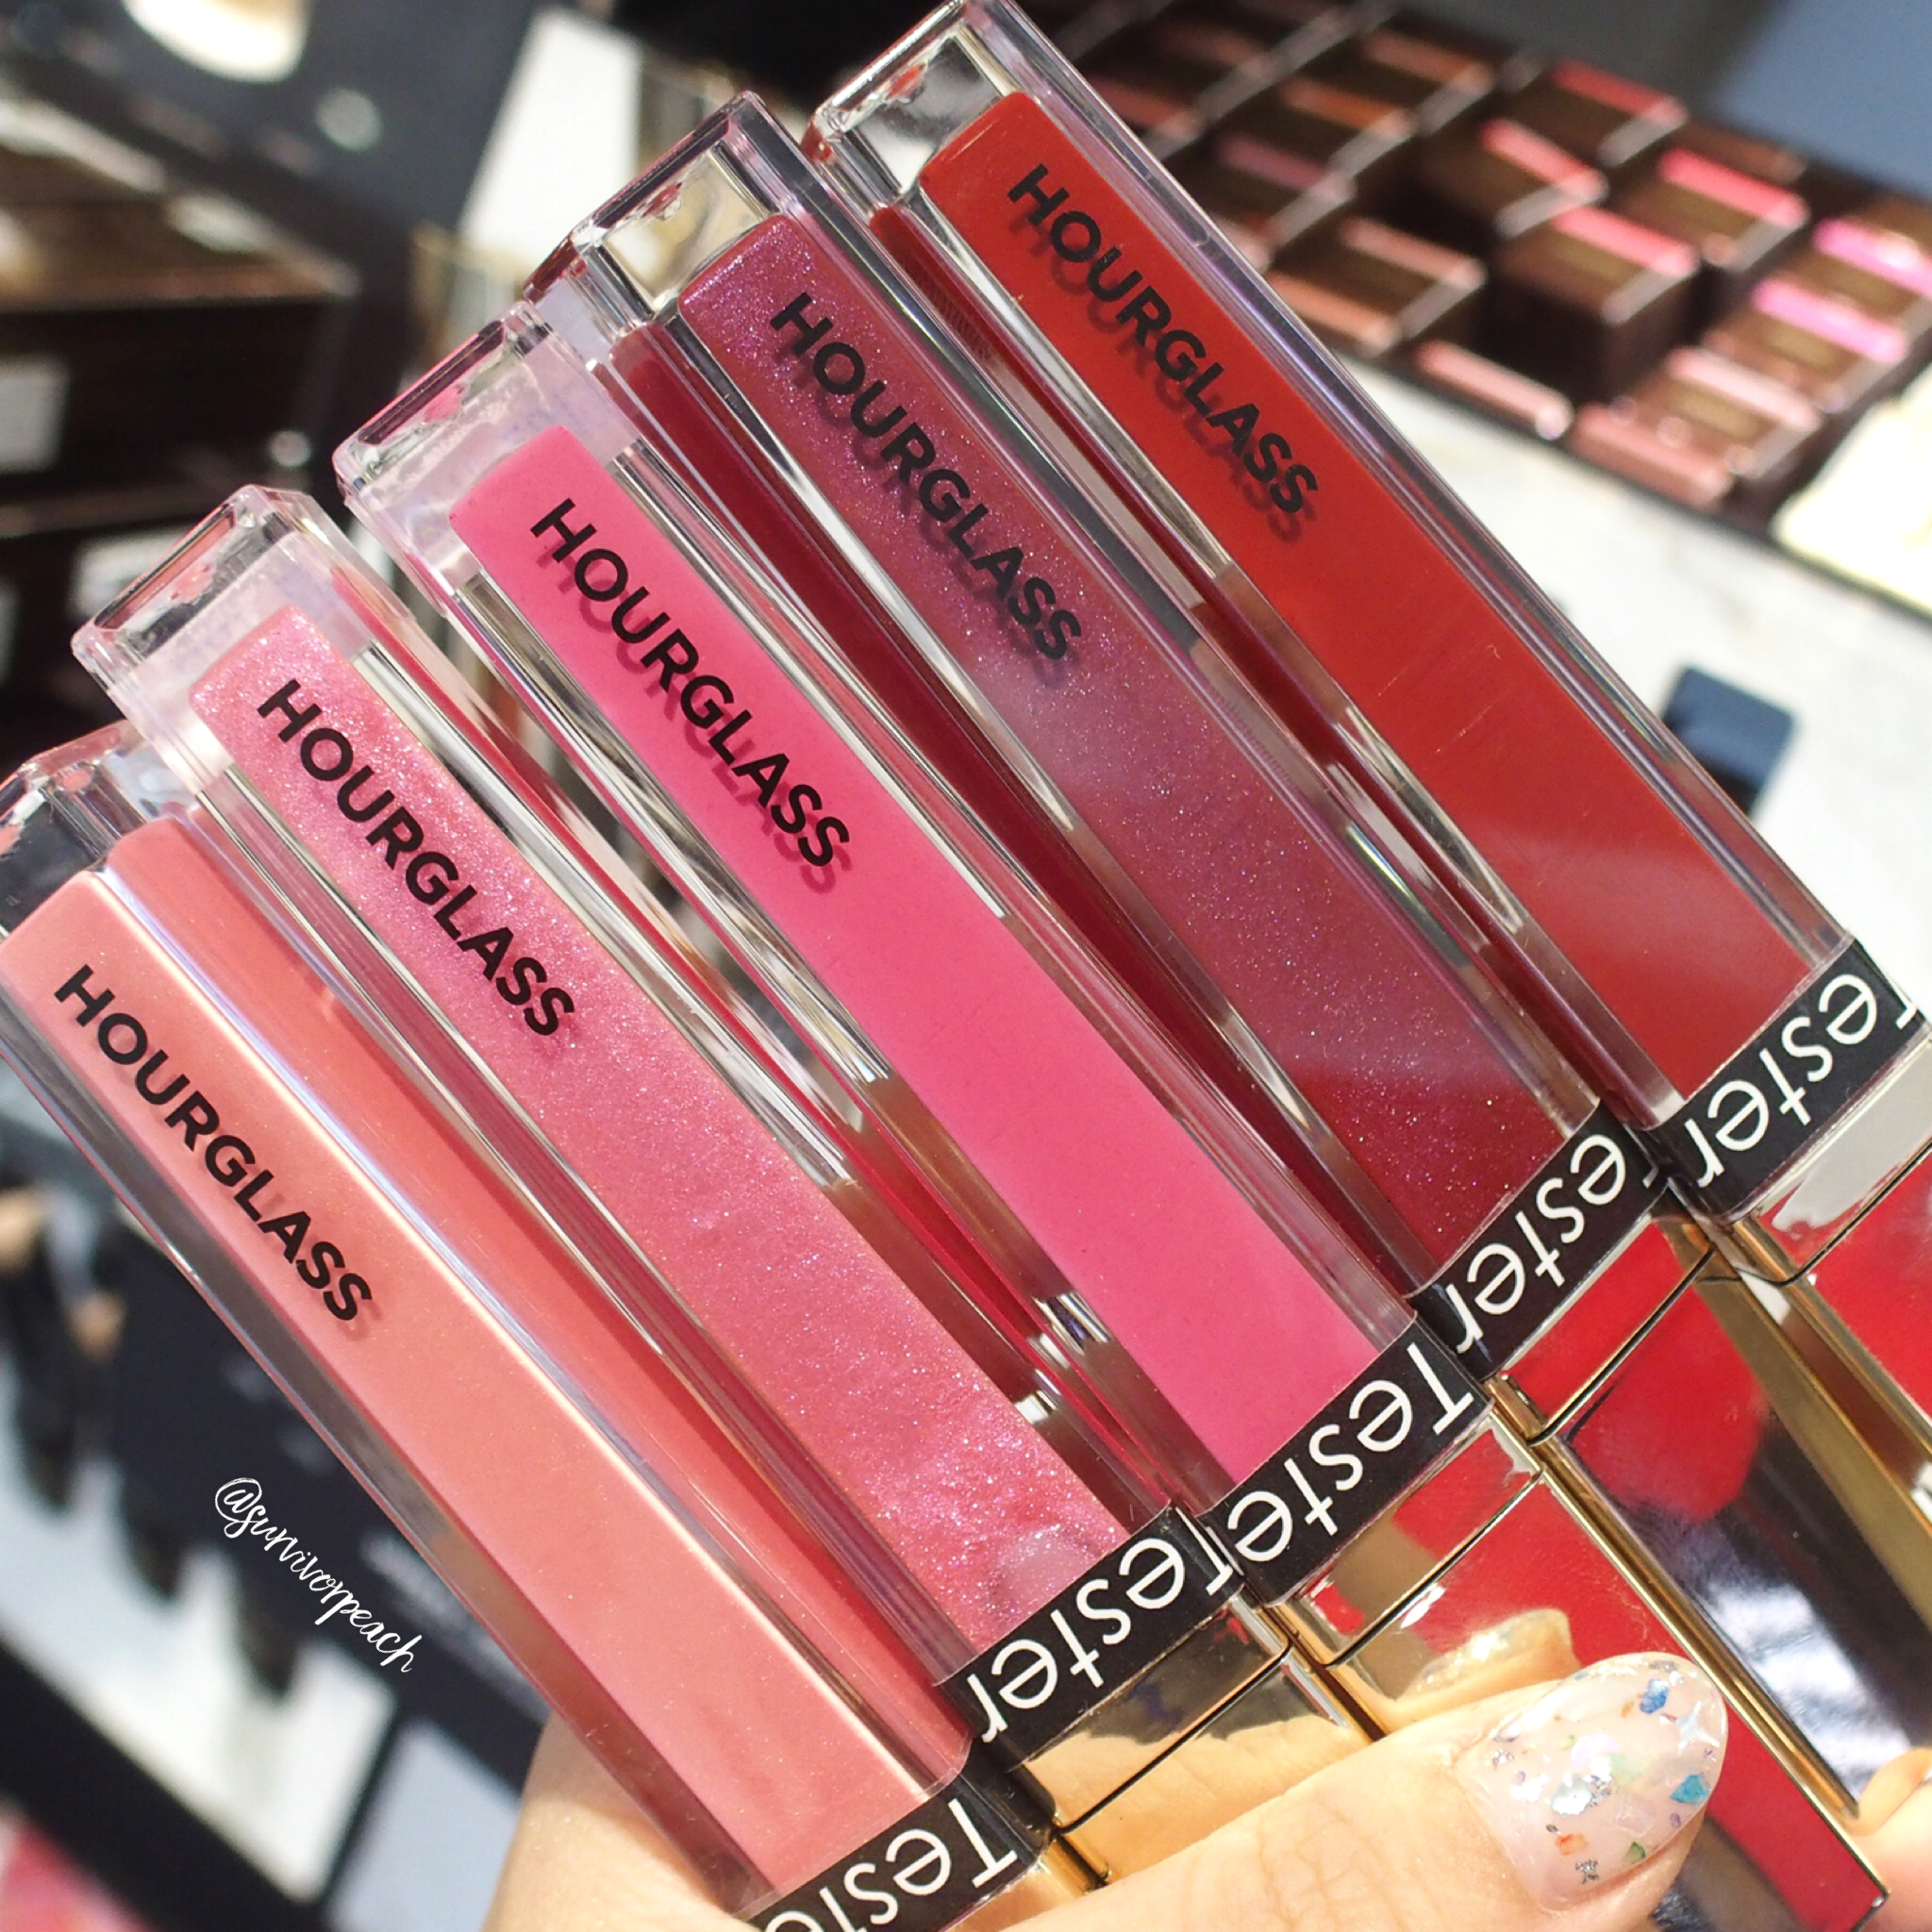 Hourglass Unreal High Shine Voluming Lipgloss: Fortune, Cosmic, Fever, Impact, Icon